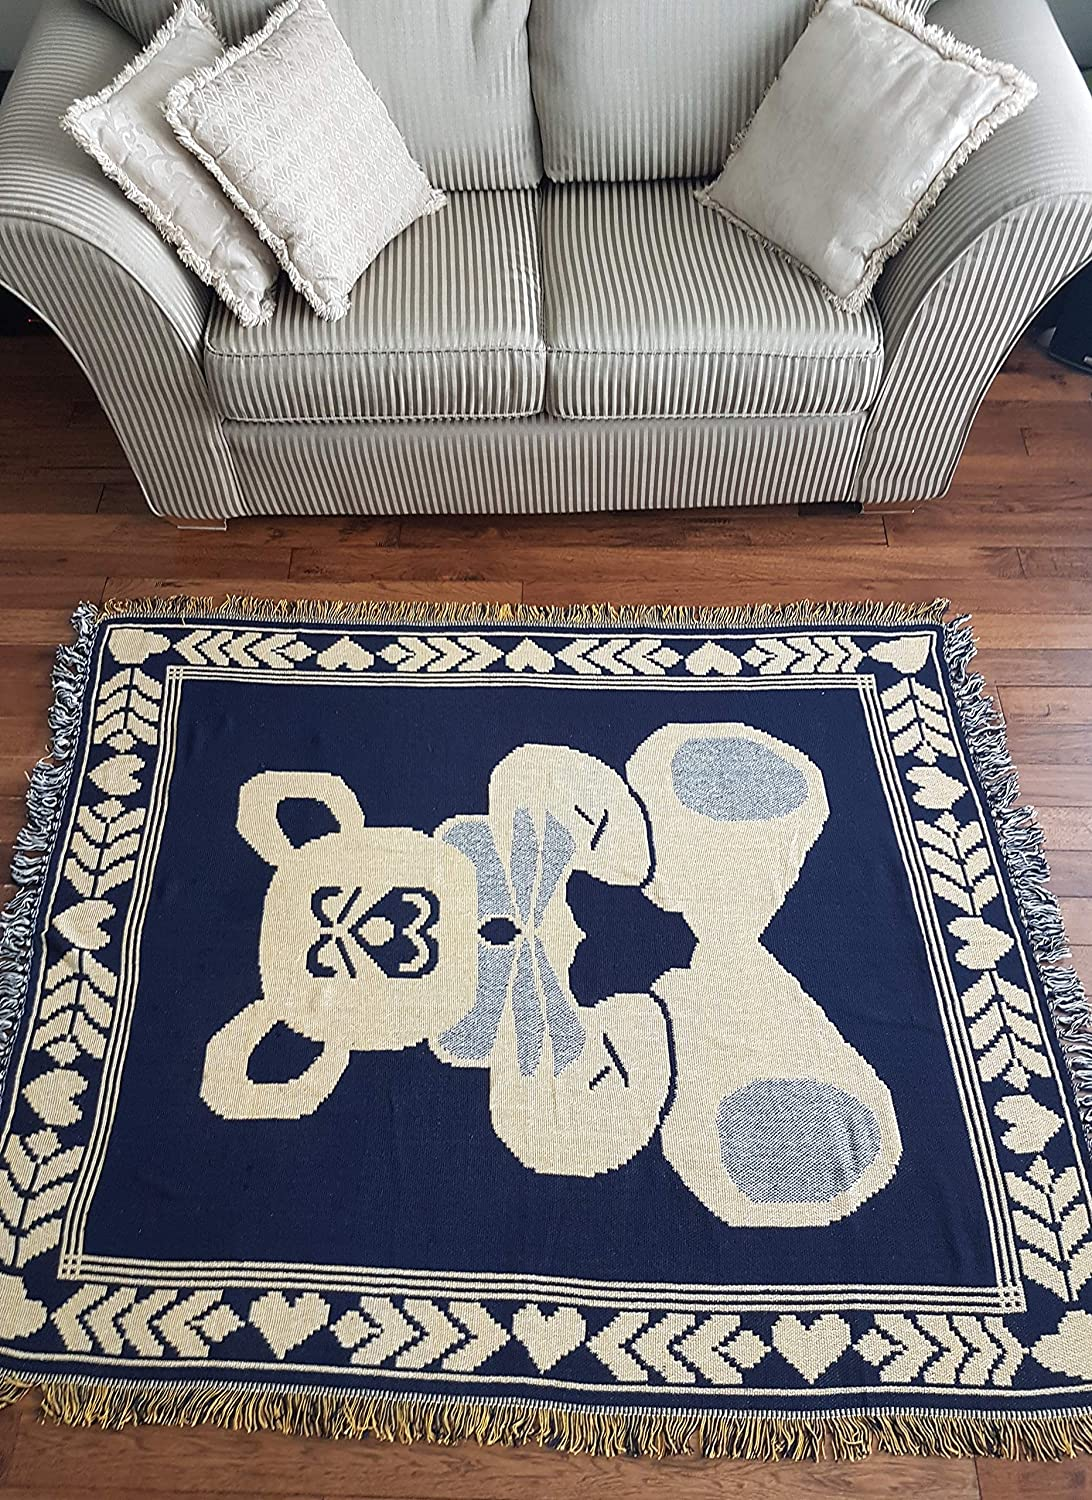 MJP Cotton Hand Knotted Reversible Soft Indian Area Rug 50x60 Bear 127x152.5cm